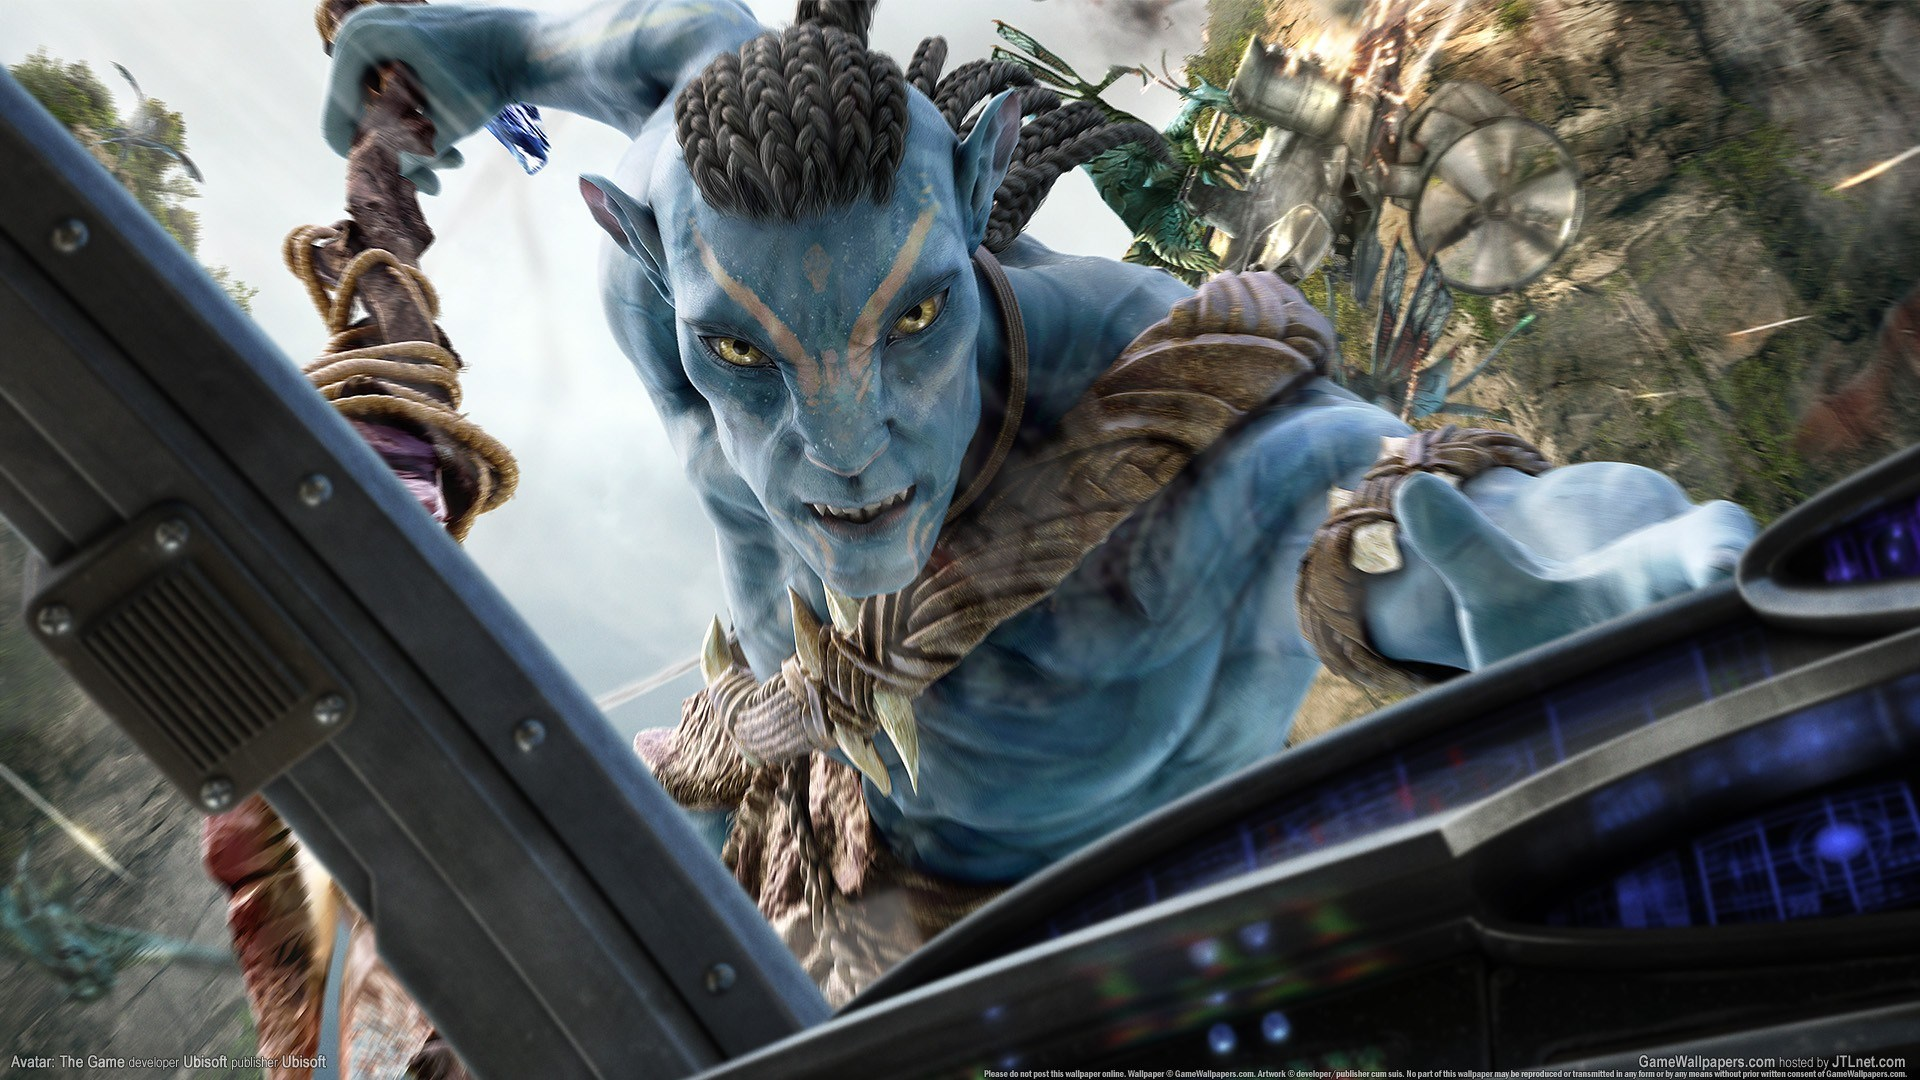 avatar-the-game-for-desktop-hd-1920x1080-wallpaper-wp3402729